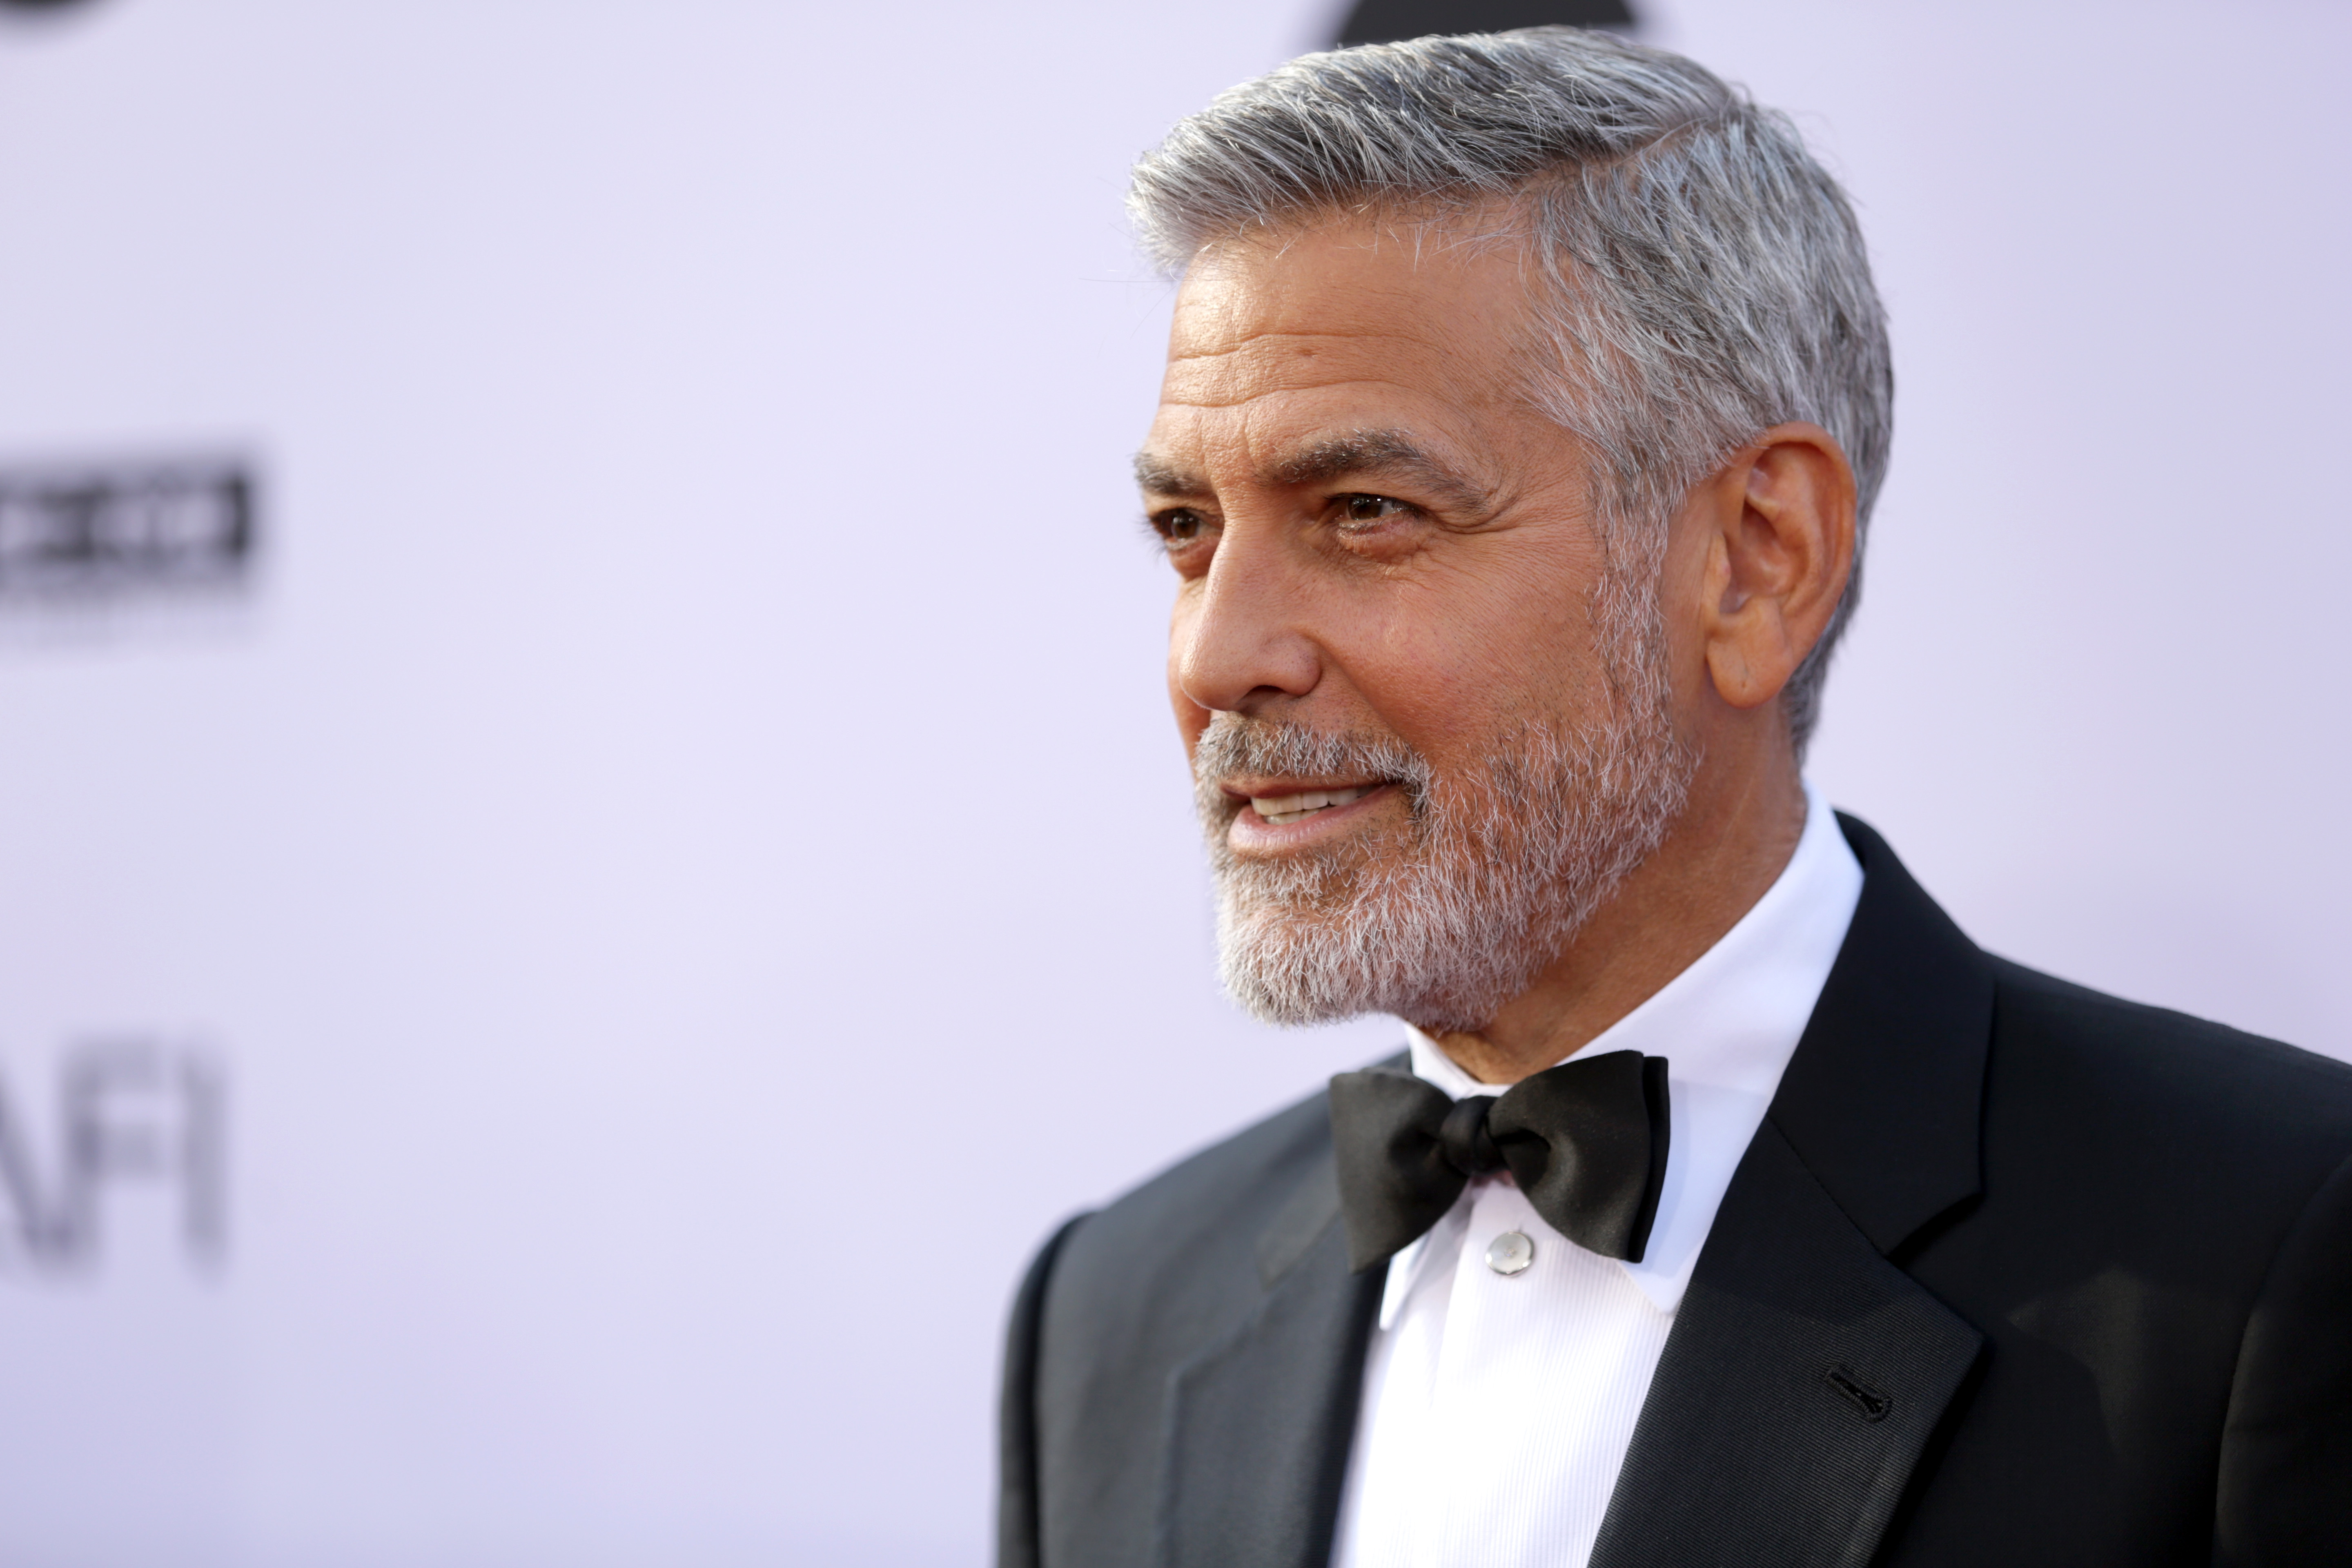 Honoree George Clooney attends the American Film Institute's 46th Life Achievement Award Gala Tribute to George Clooney at Dolby Theatre  on June 7, 2018 in Hollywood, California.